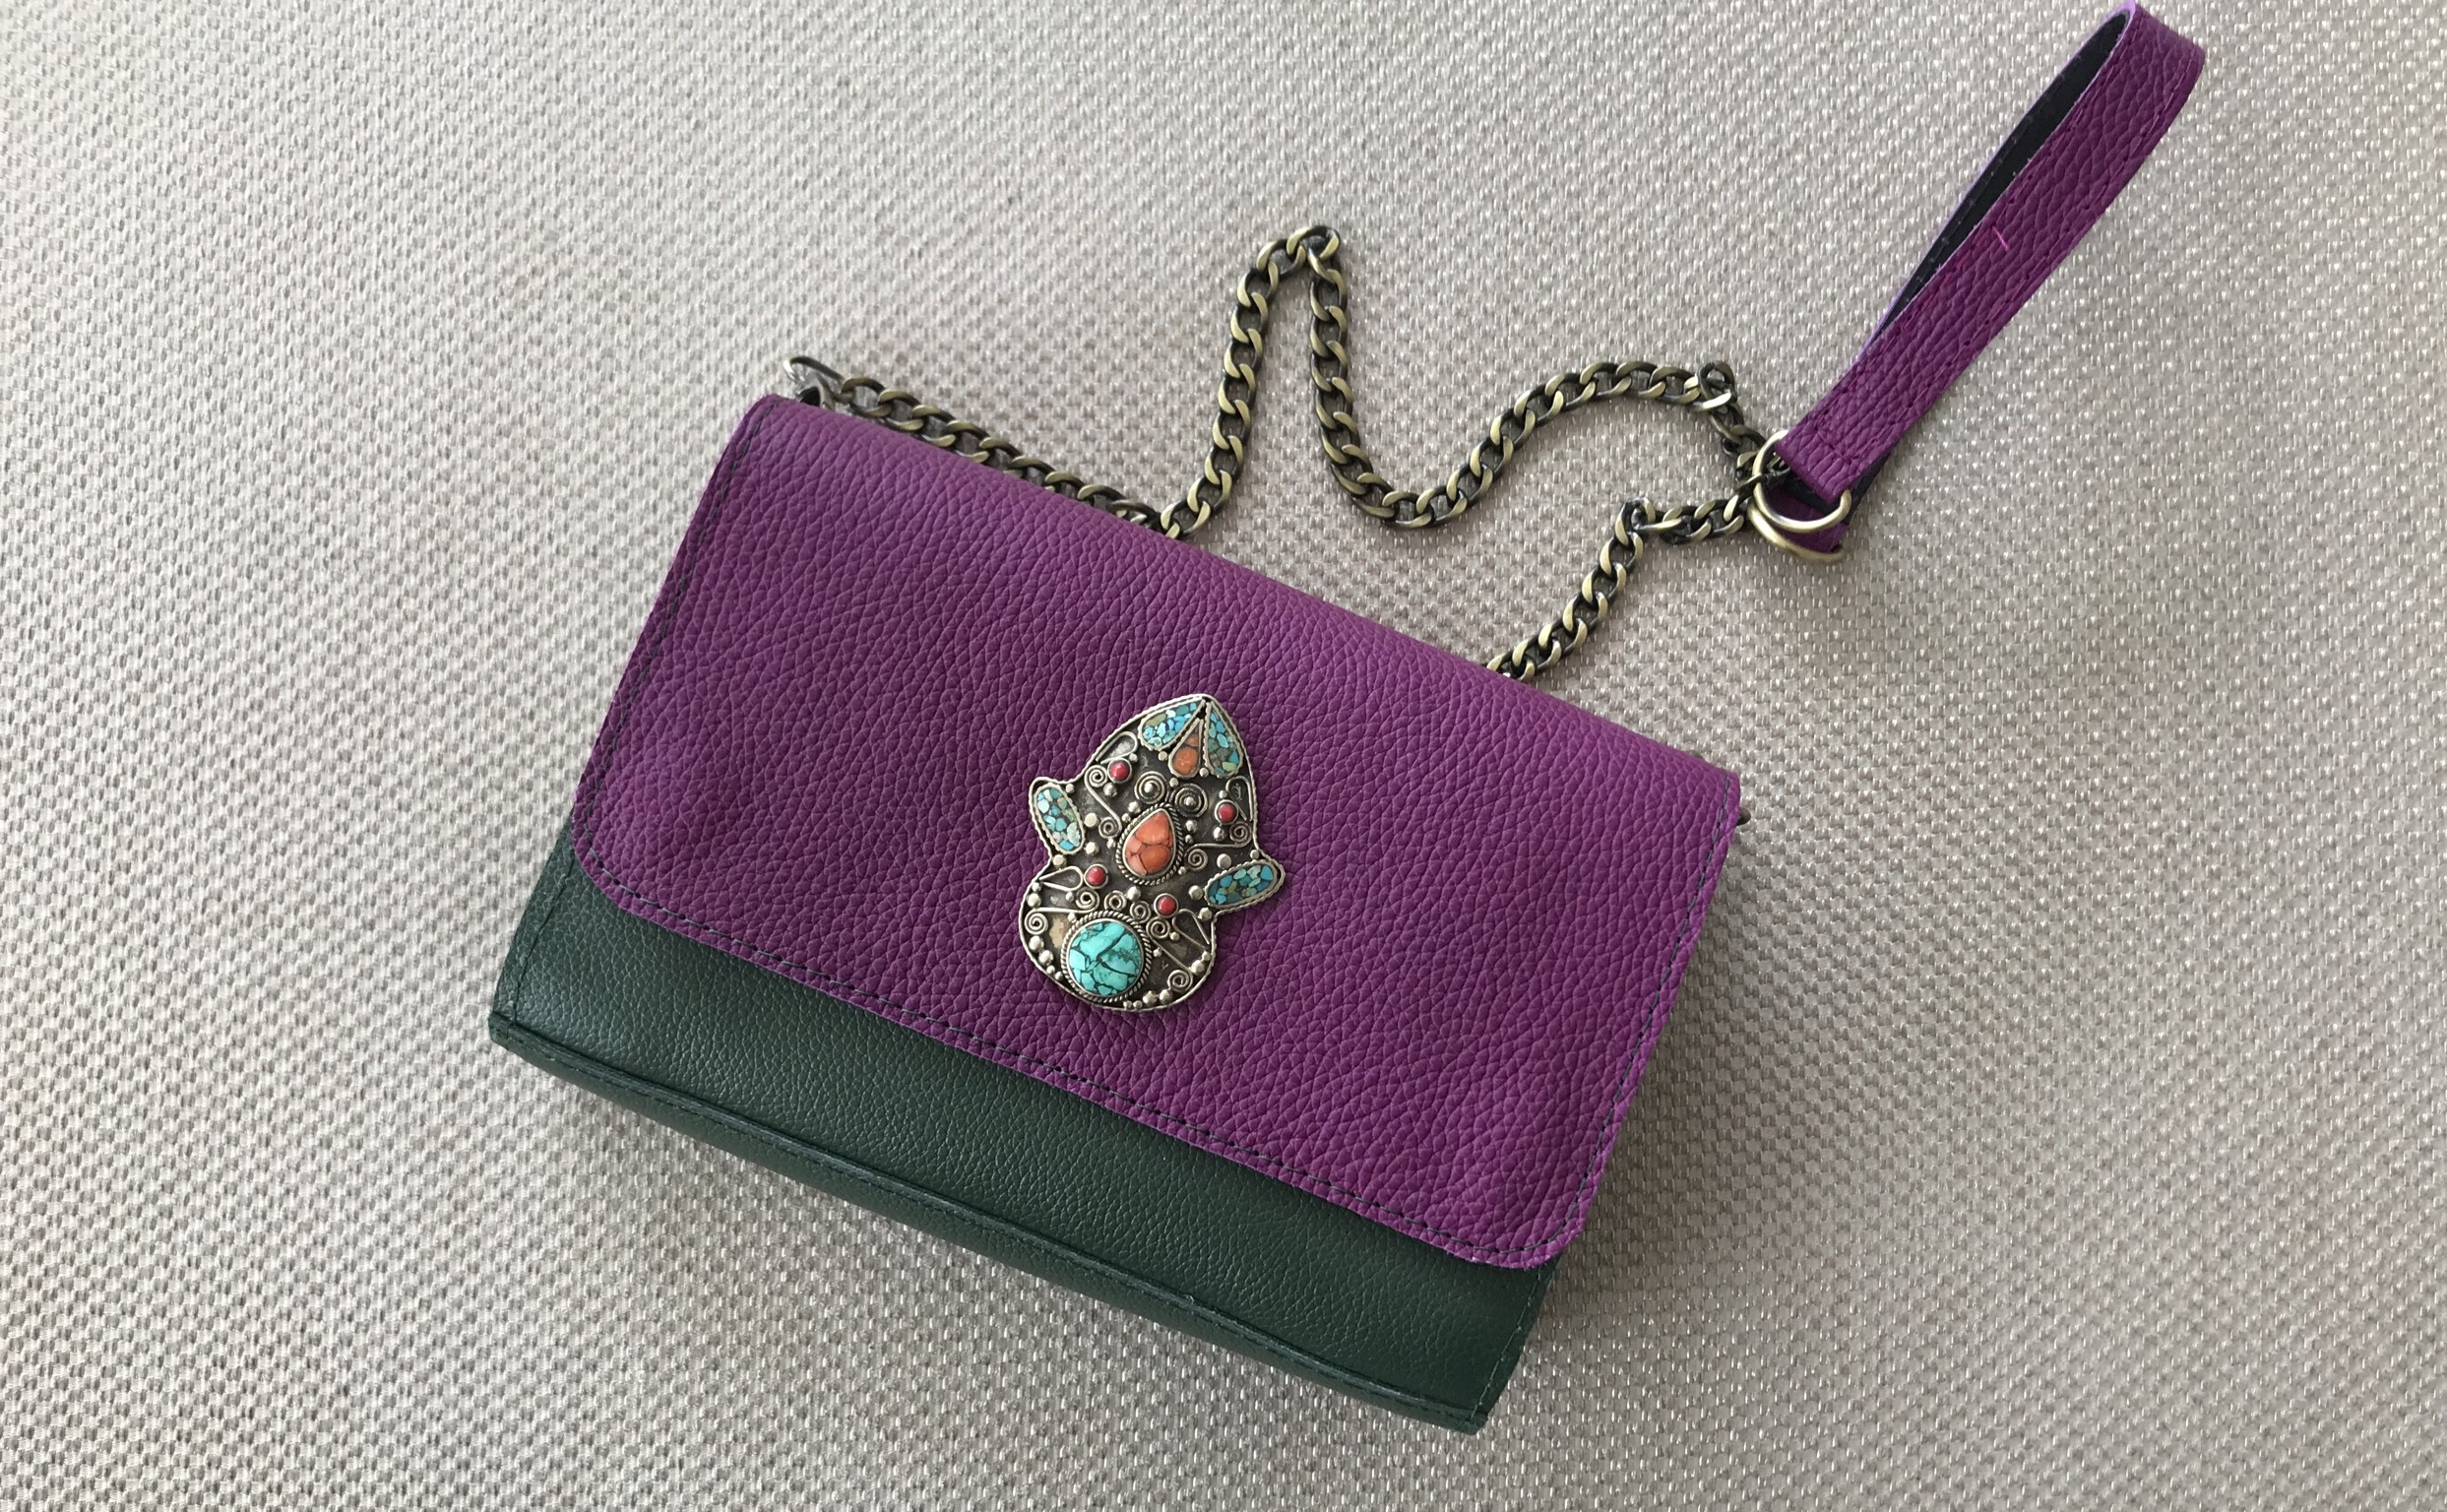 Jewelry bag suede leather bi color green purple